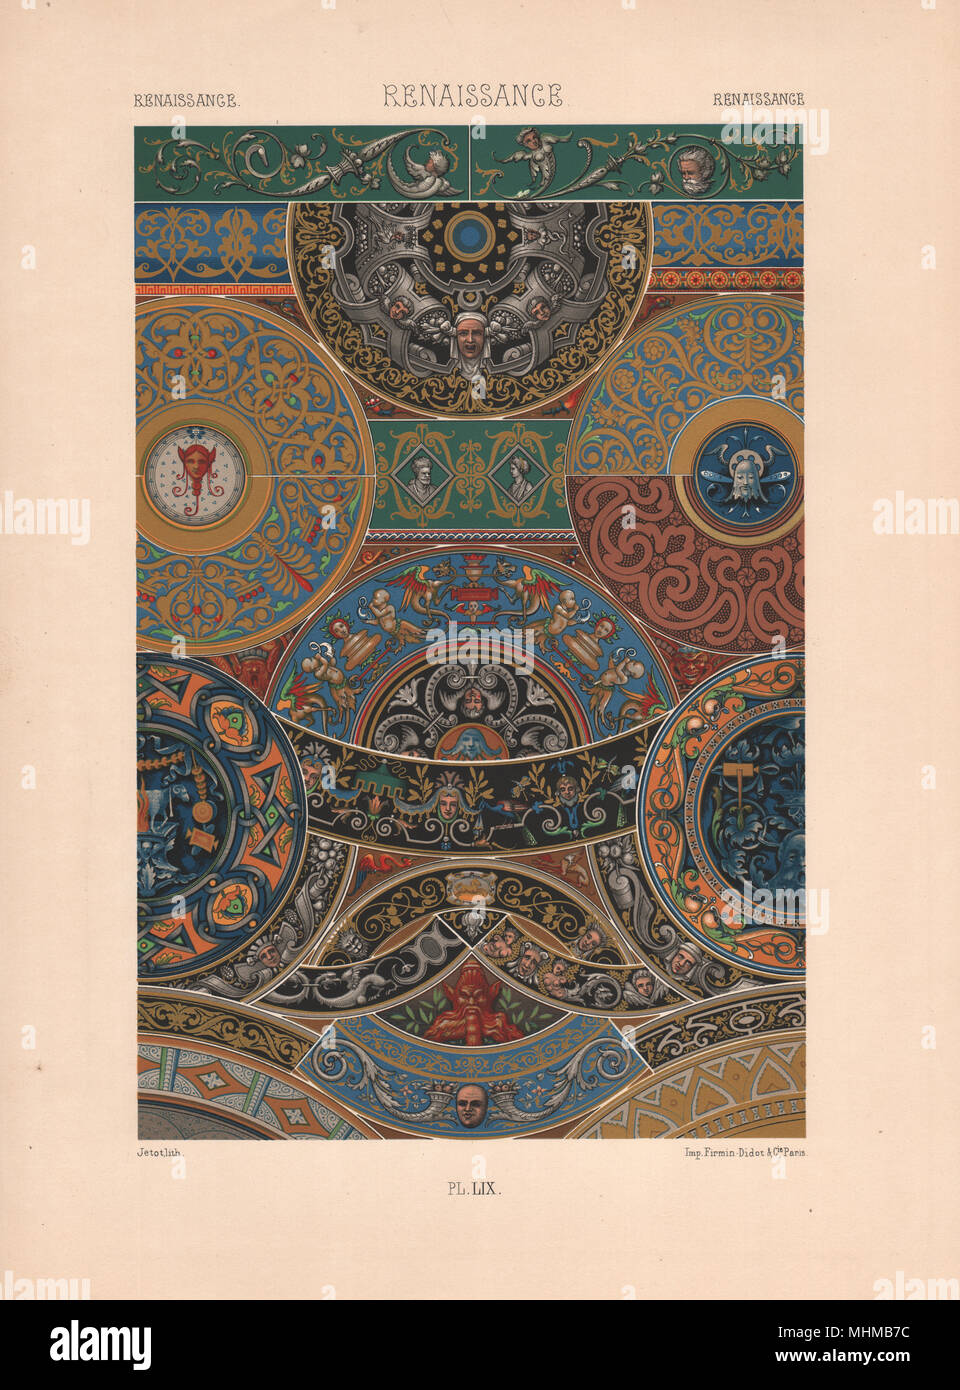 RACINET ORNEMENT POLYCHROME 59 Renaissance decorative arts patterns motifs c1885 - Stock Image